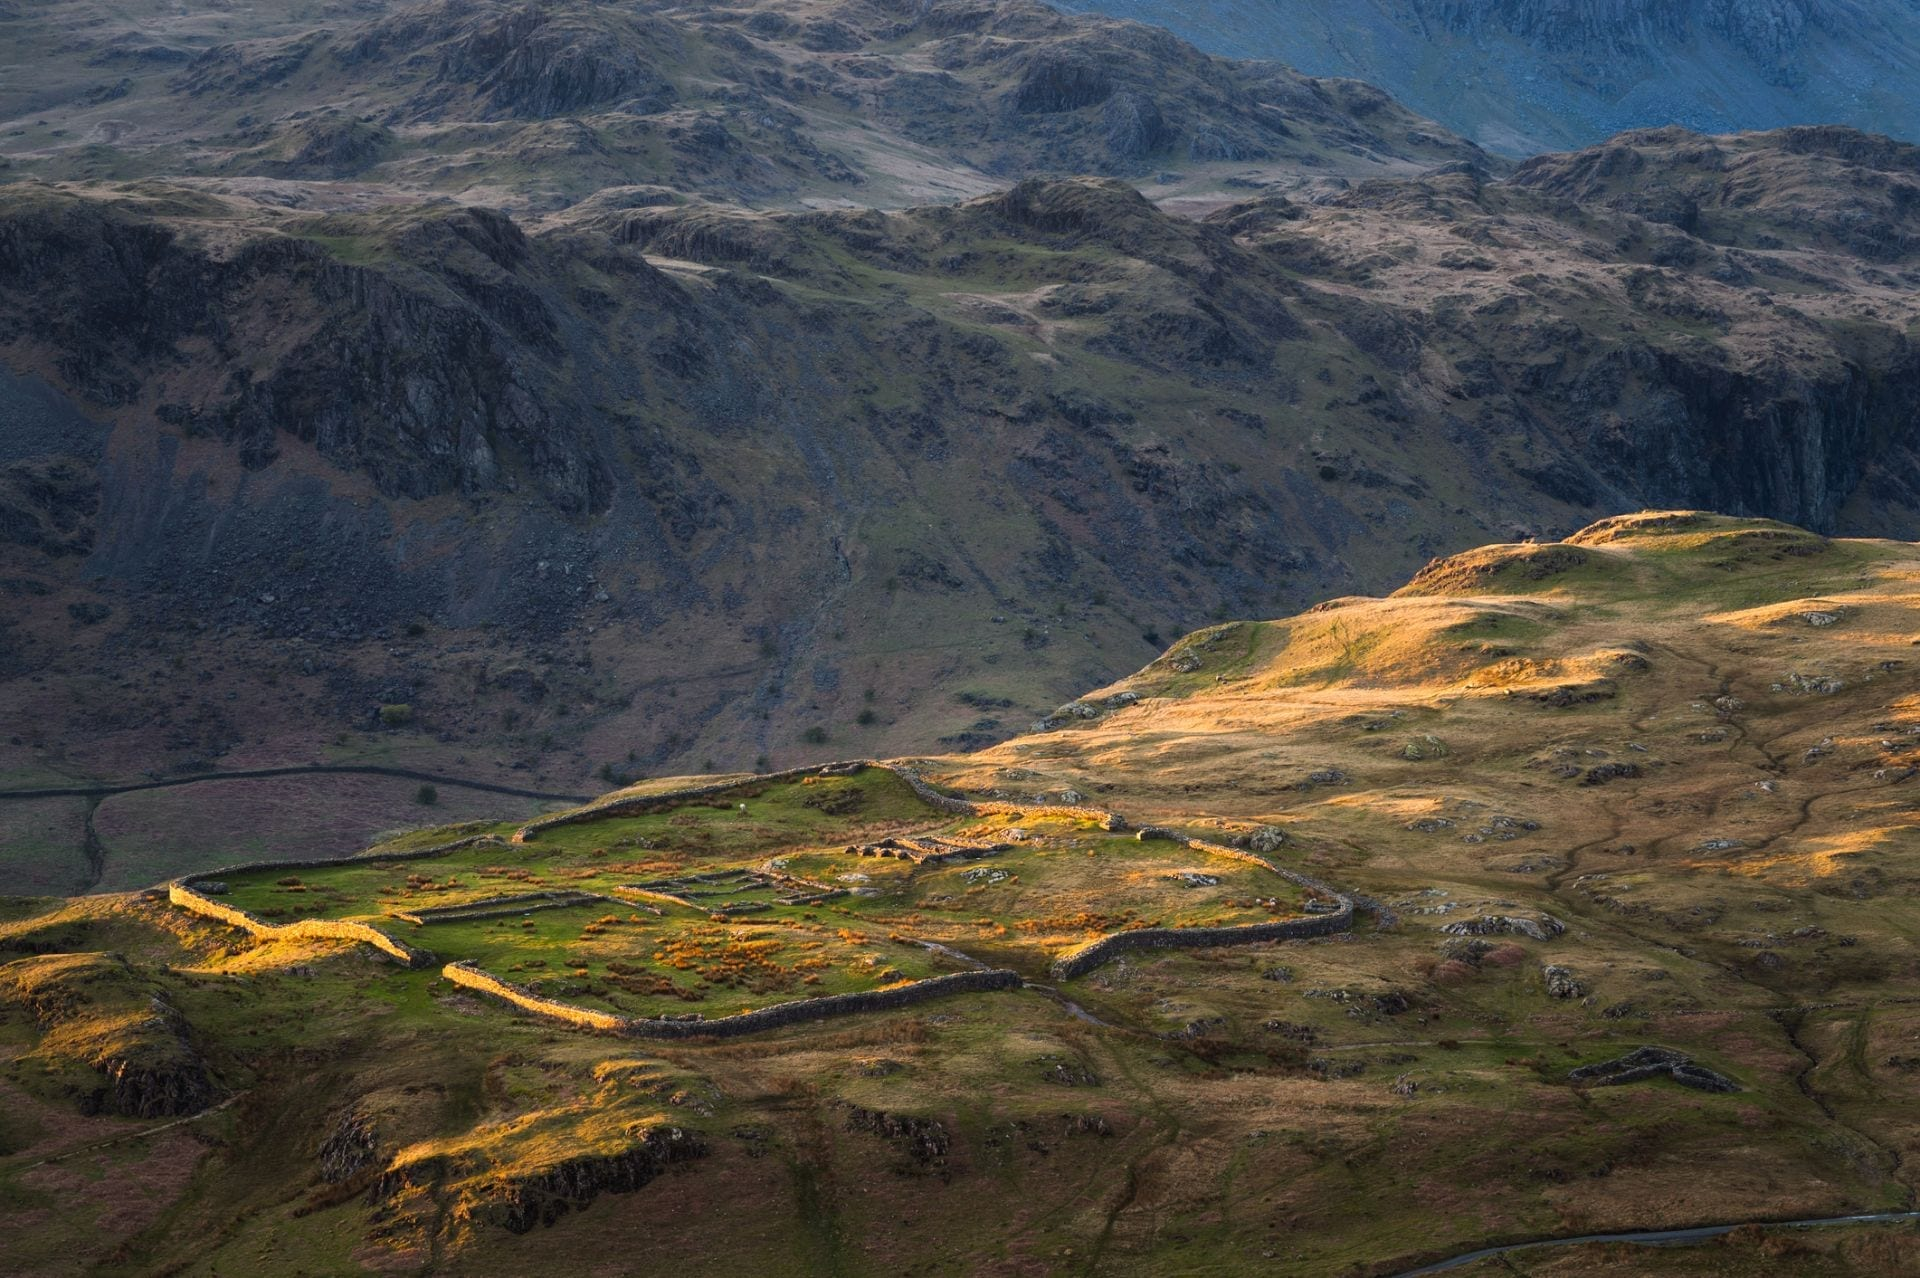 hardknott-pass-road-in-lake-district-england-surrounded-by-mountains